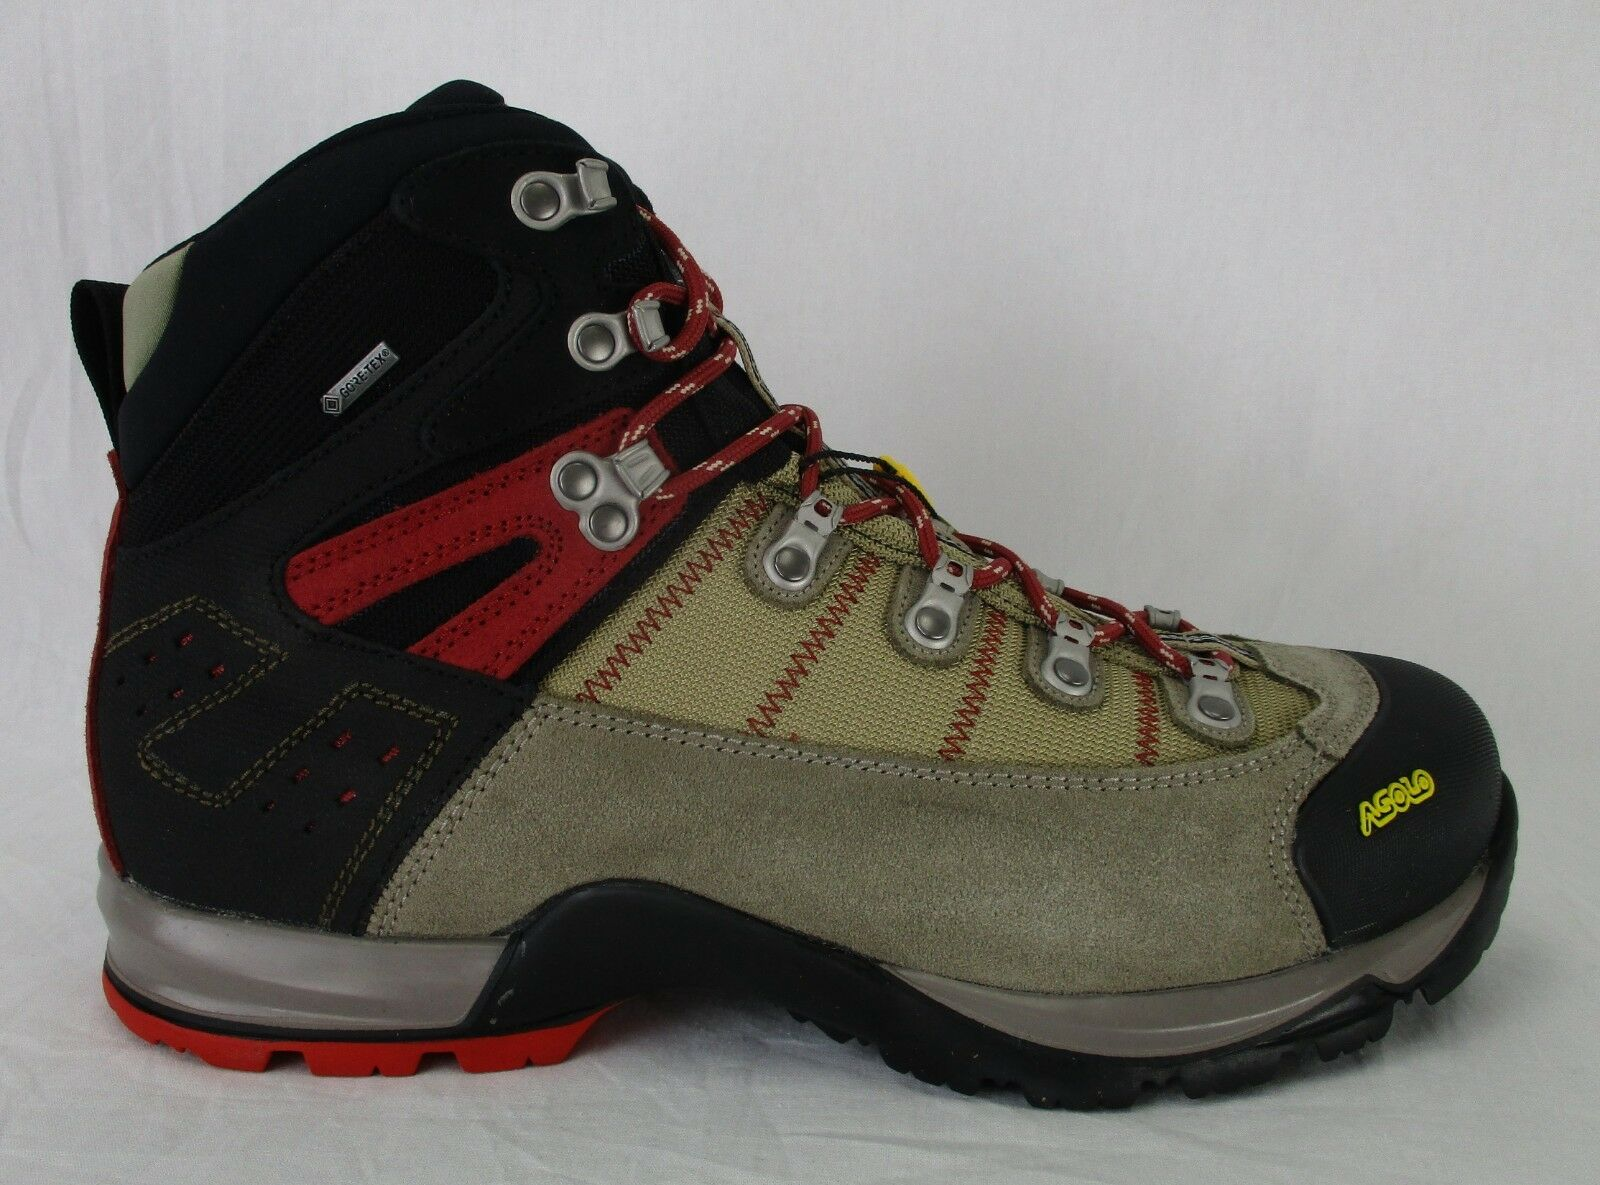 Asolo Mens Fugitive GTX Hiking stivali 0M3440 Wool nero Dimensione 9.5 Wide